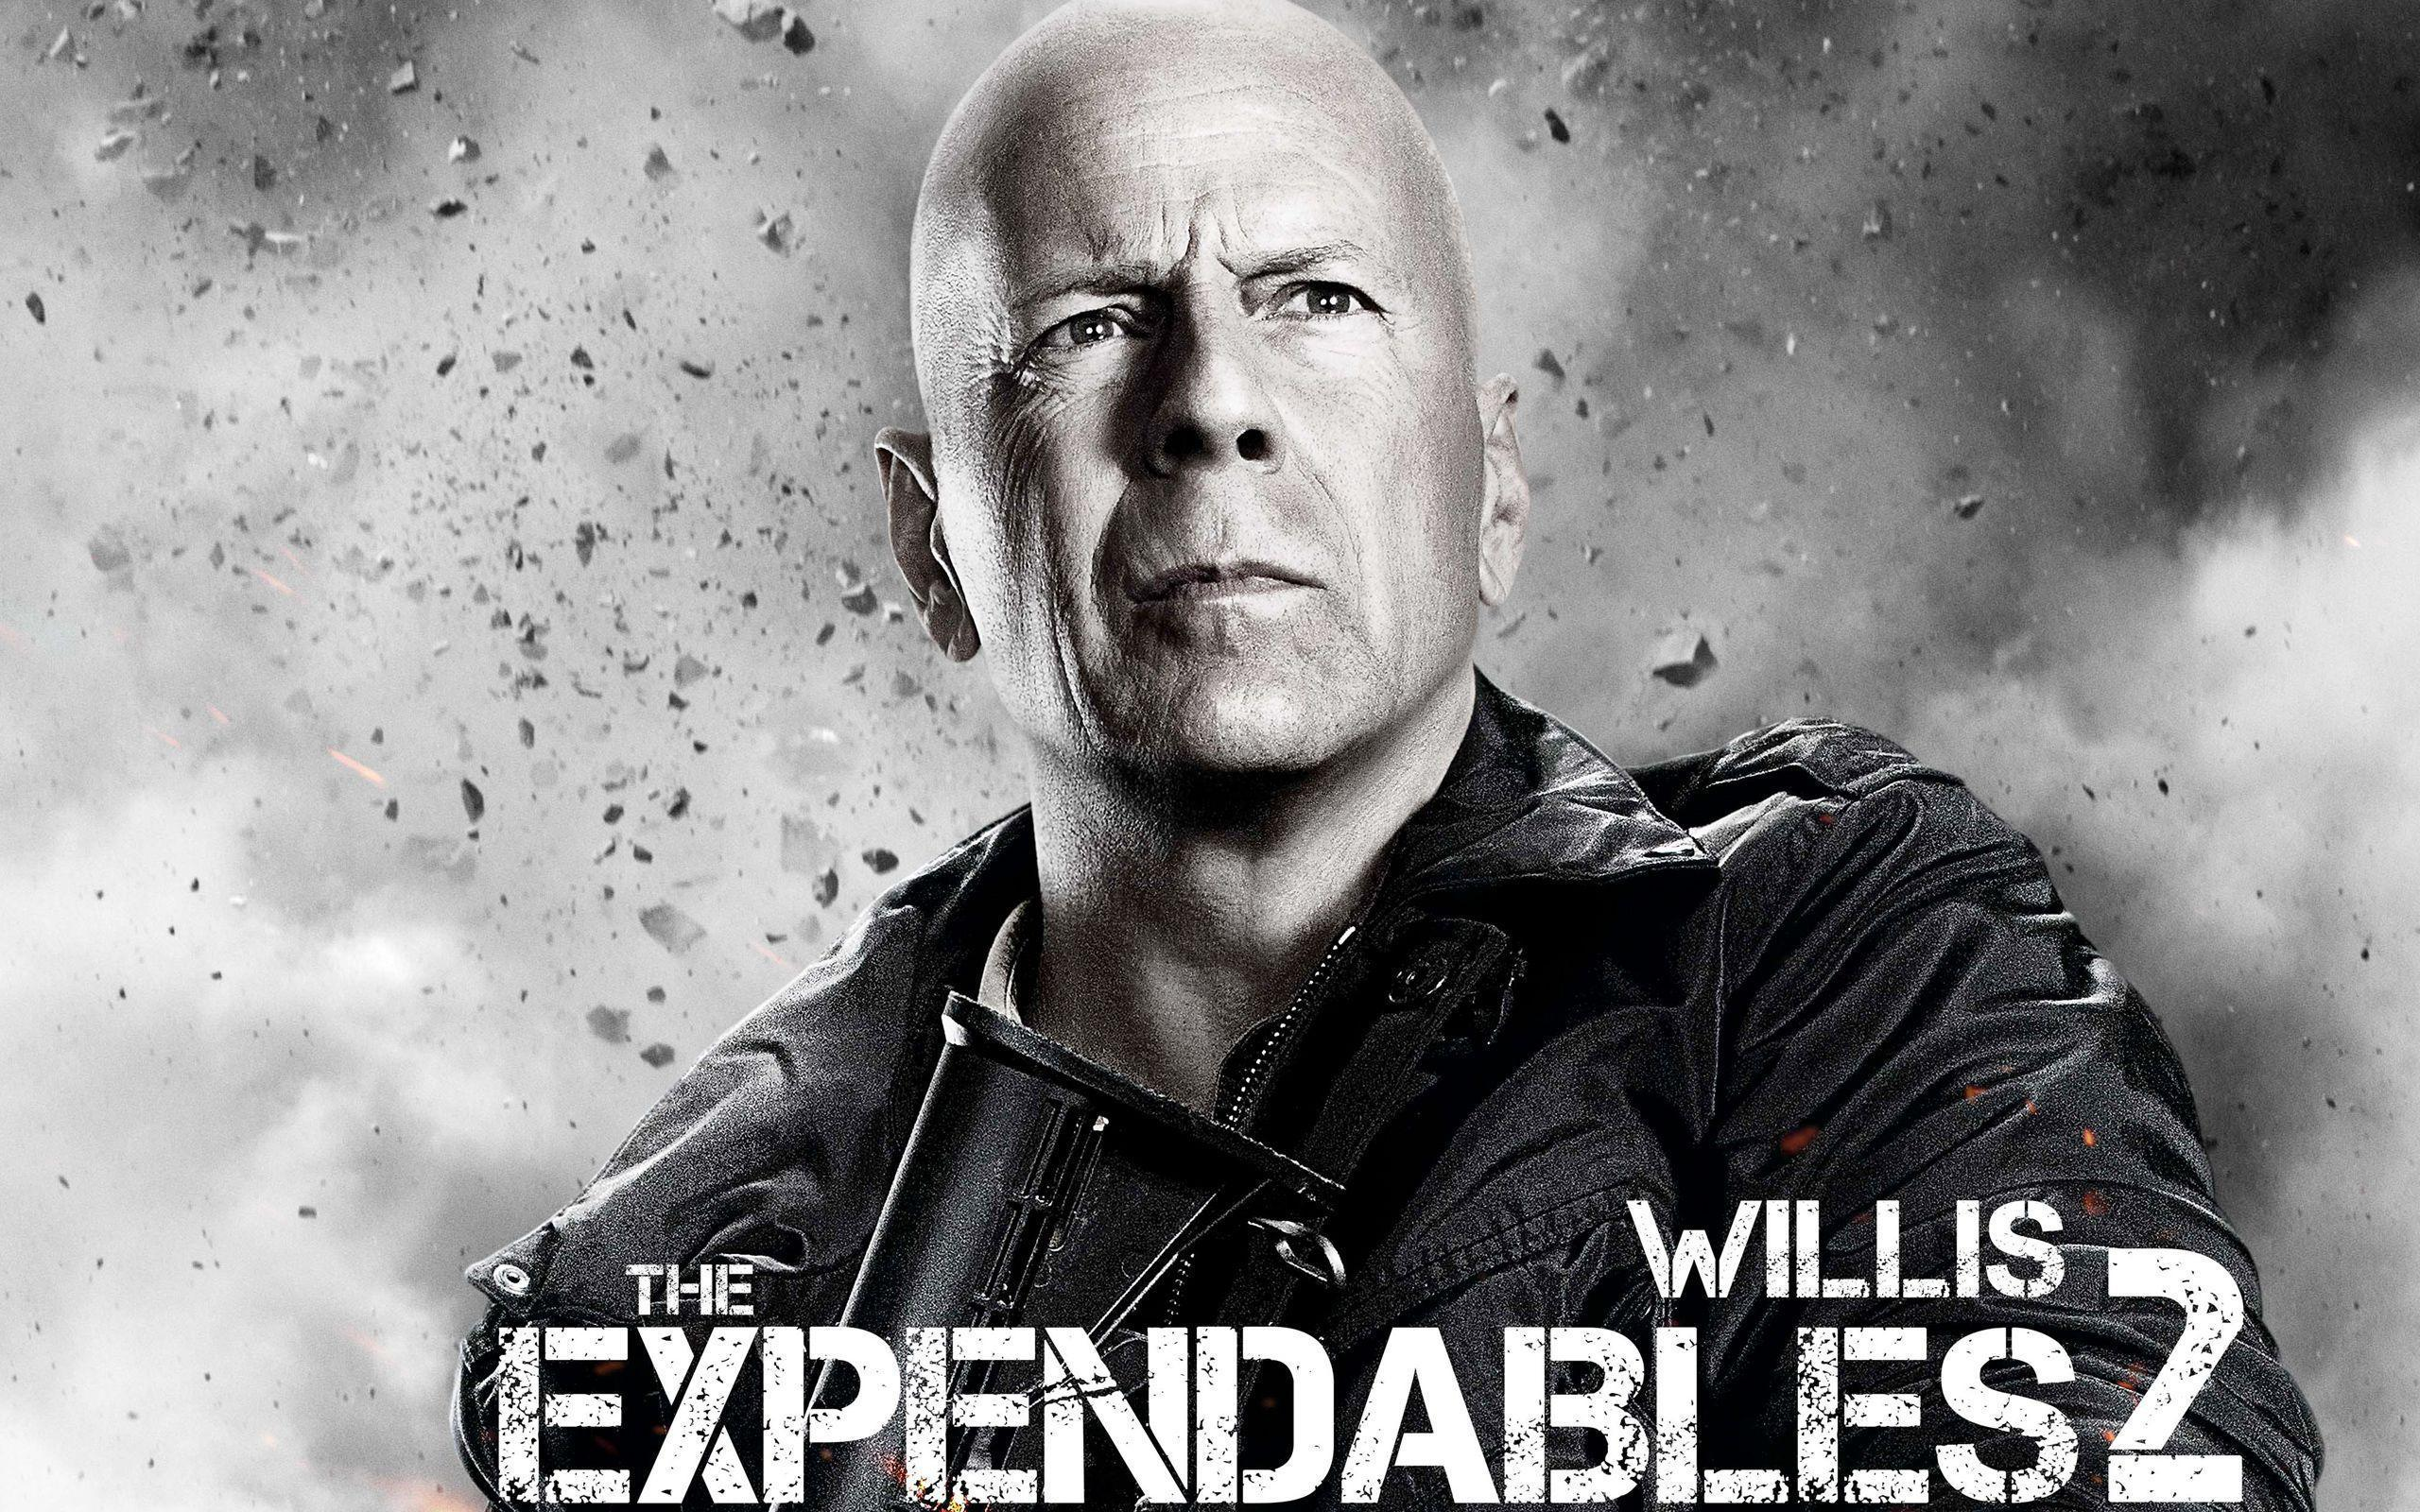 Bruce Willis in Expendables 2 Wallpapers | HD Wallpapers